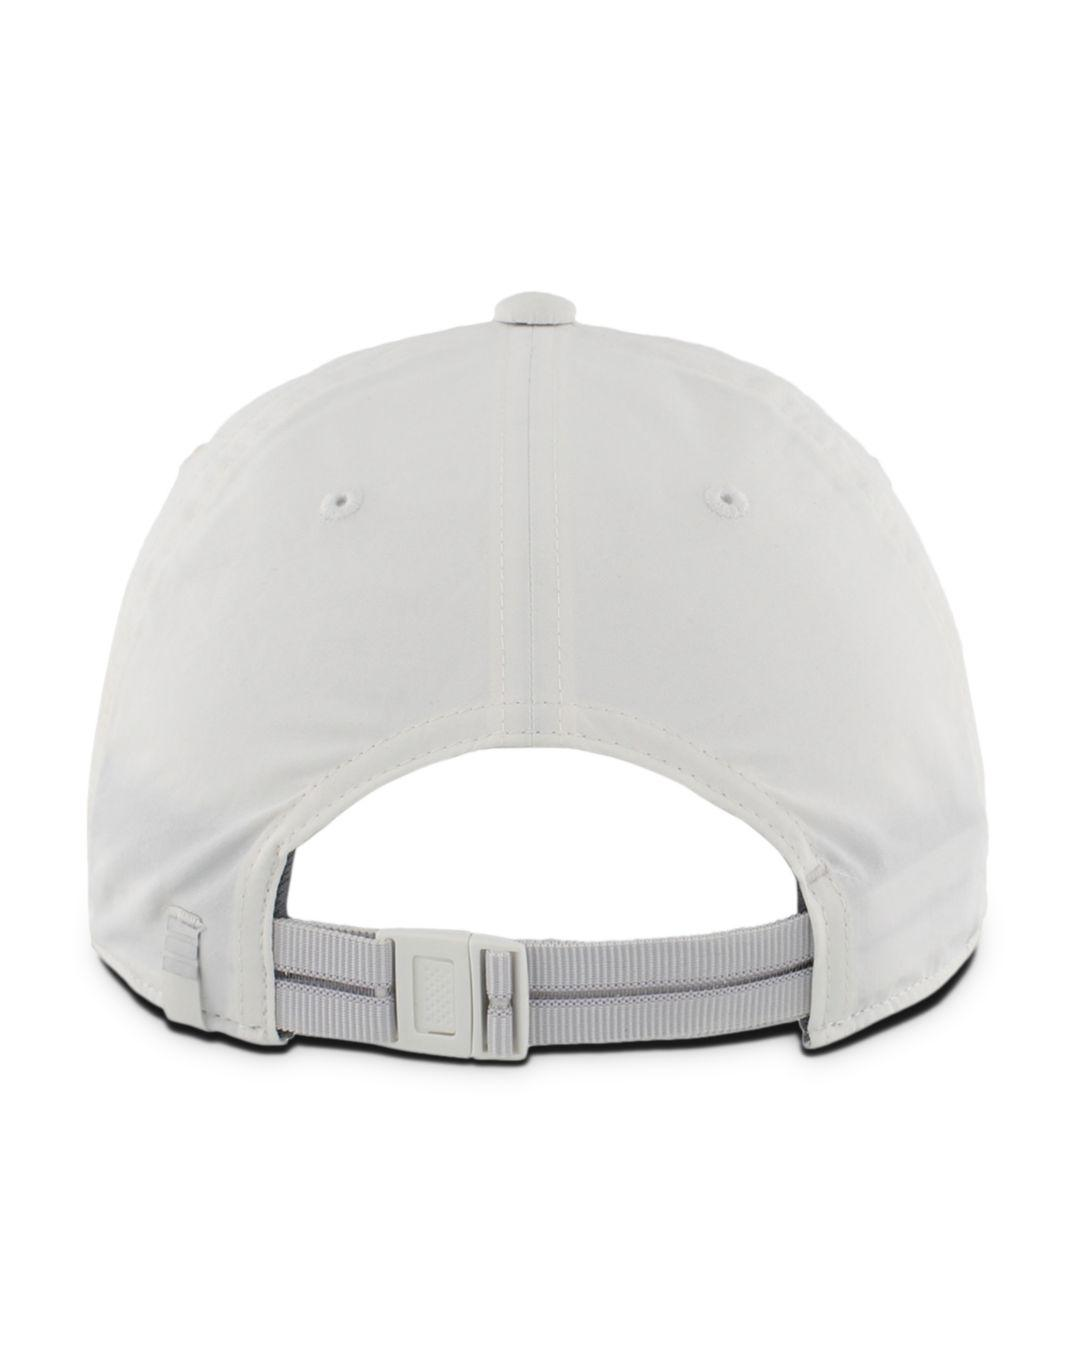 Adidas Originals Relaxed Modern Ii Hat in White for Men - Lyst c94dc105c8b